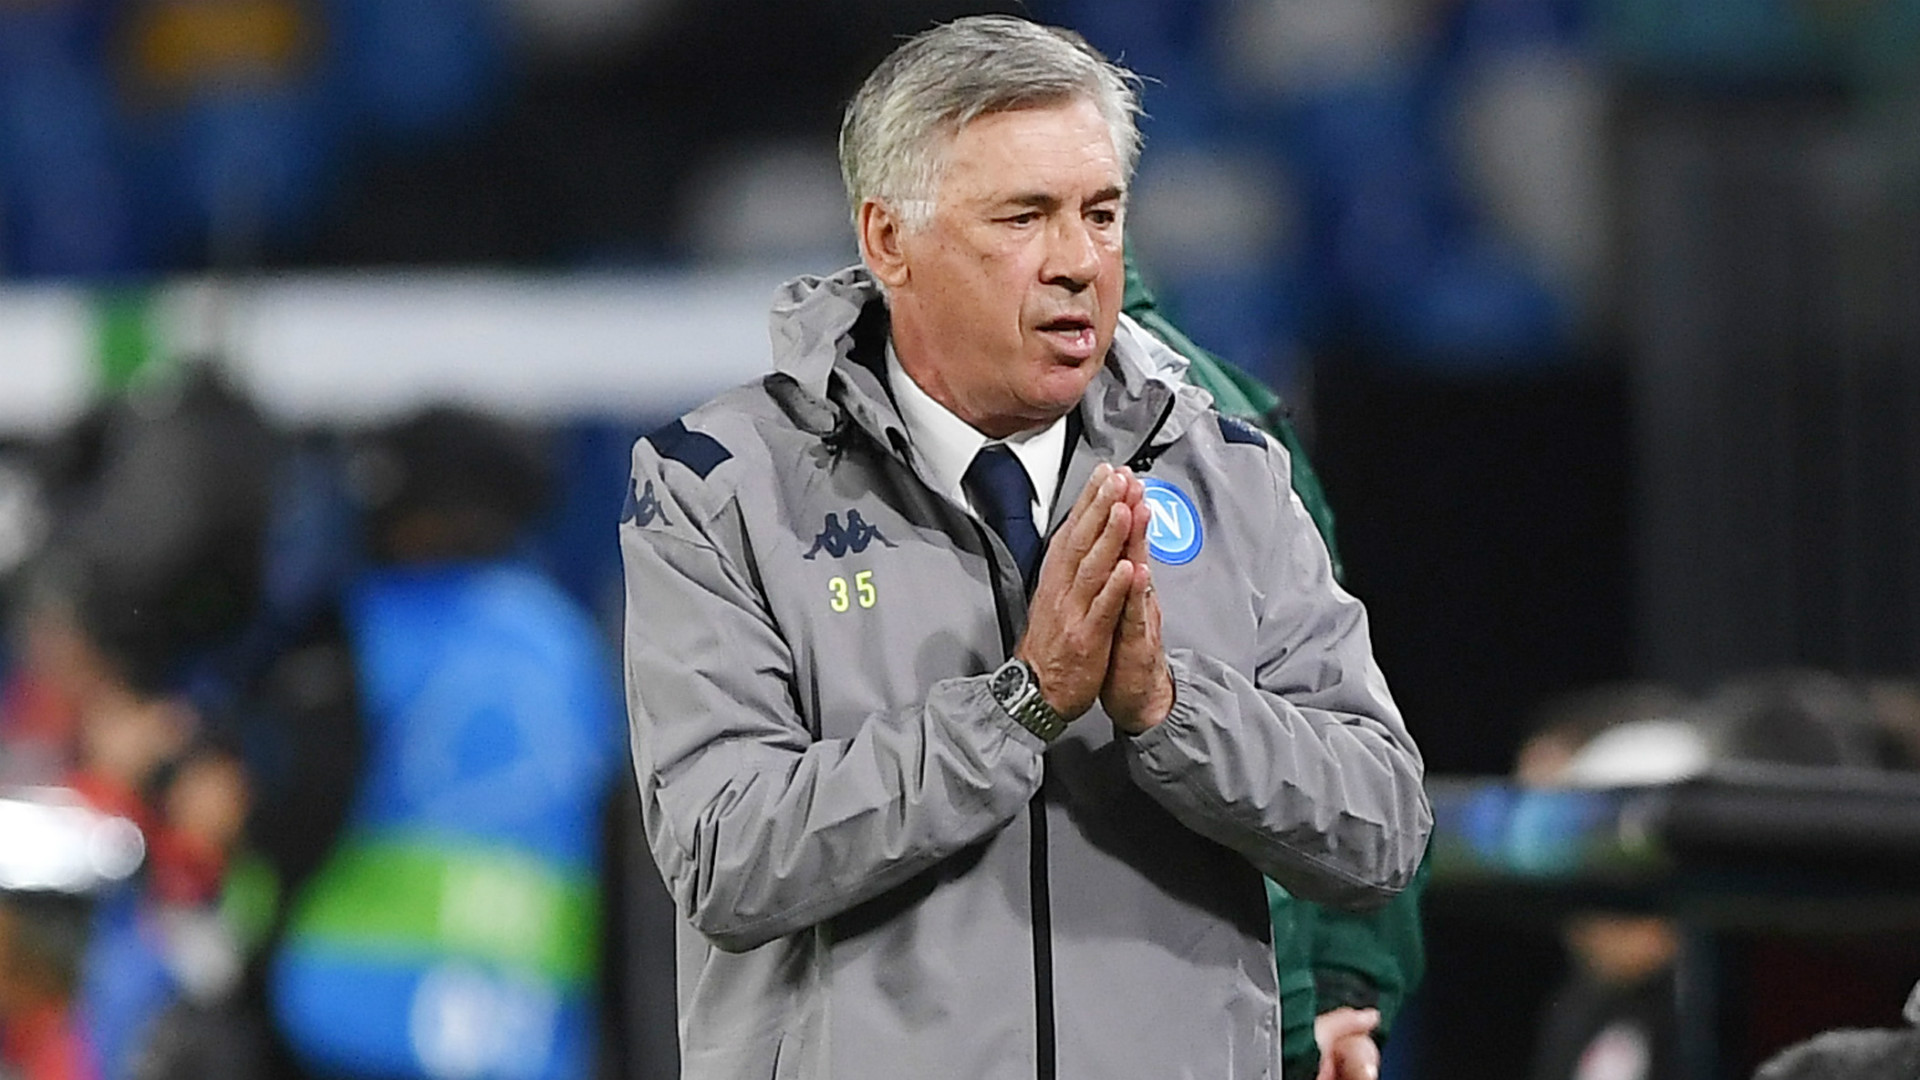 Carlo Ancelotti sack rumours emerge as Napoli respond to training mutiny